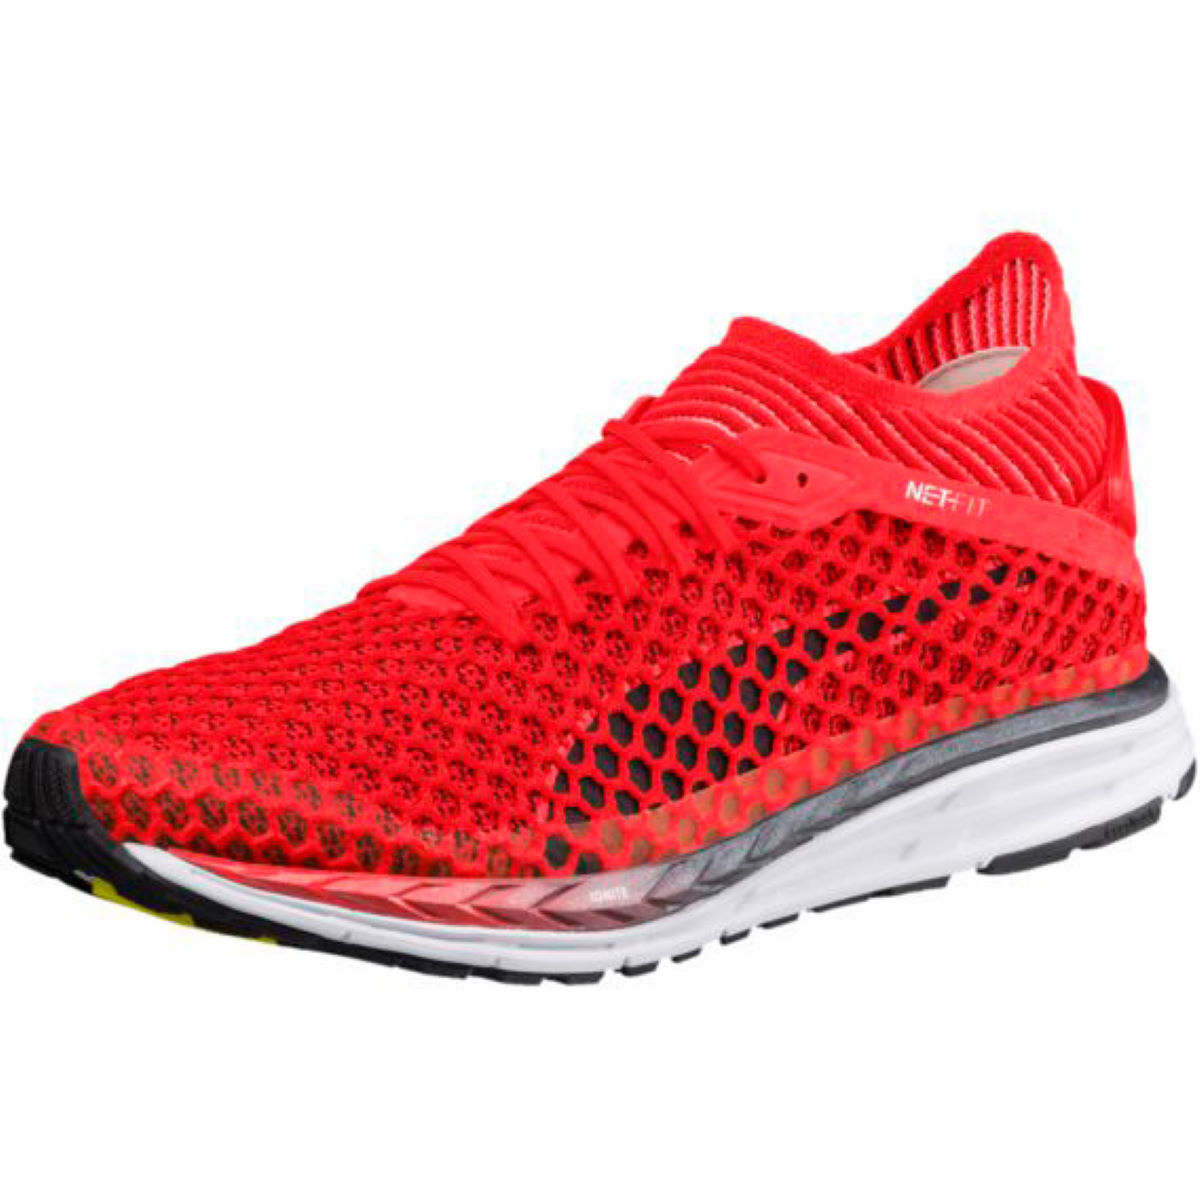 Zapatillas Puma Speed Ignite Netfit 2 - Zapatillas acolchadas